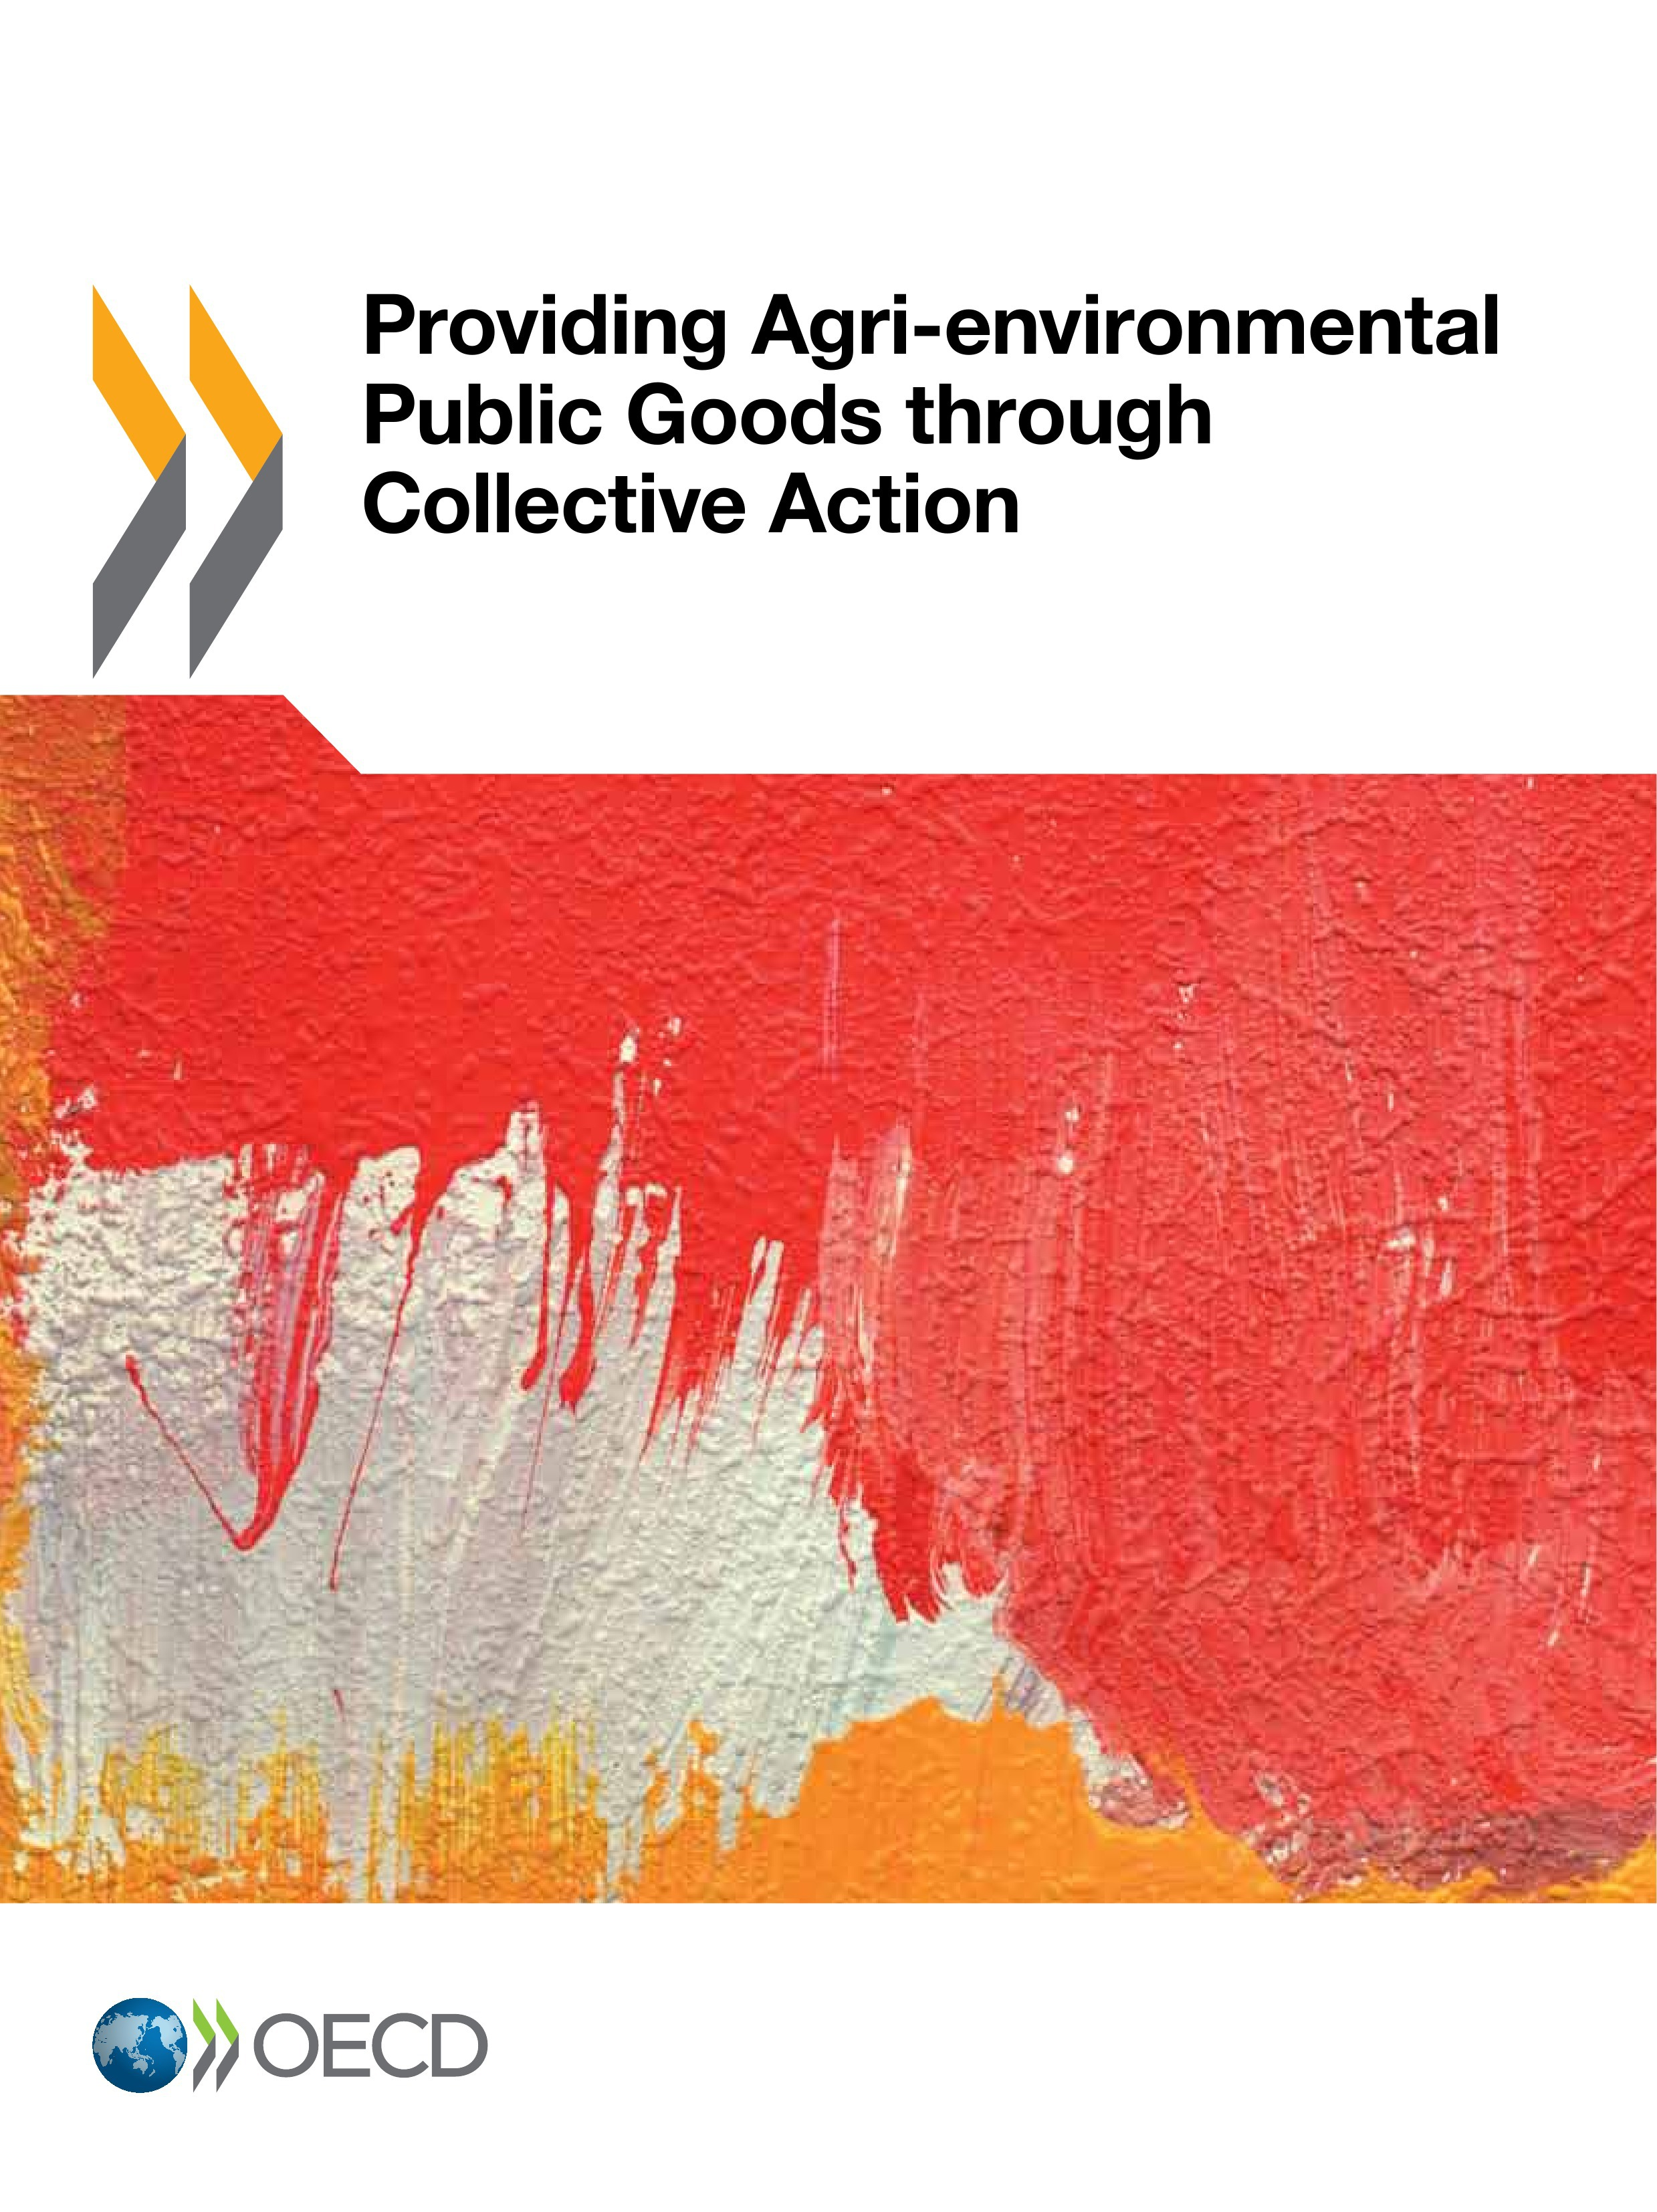 Providing agri-environmental public goods through collective action